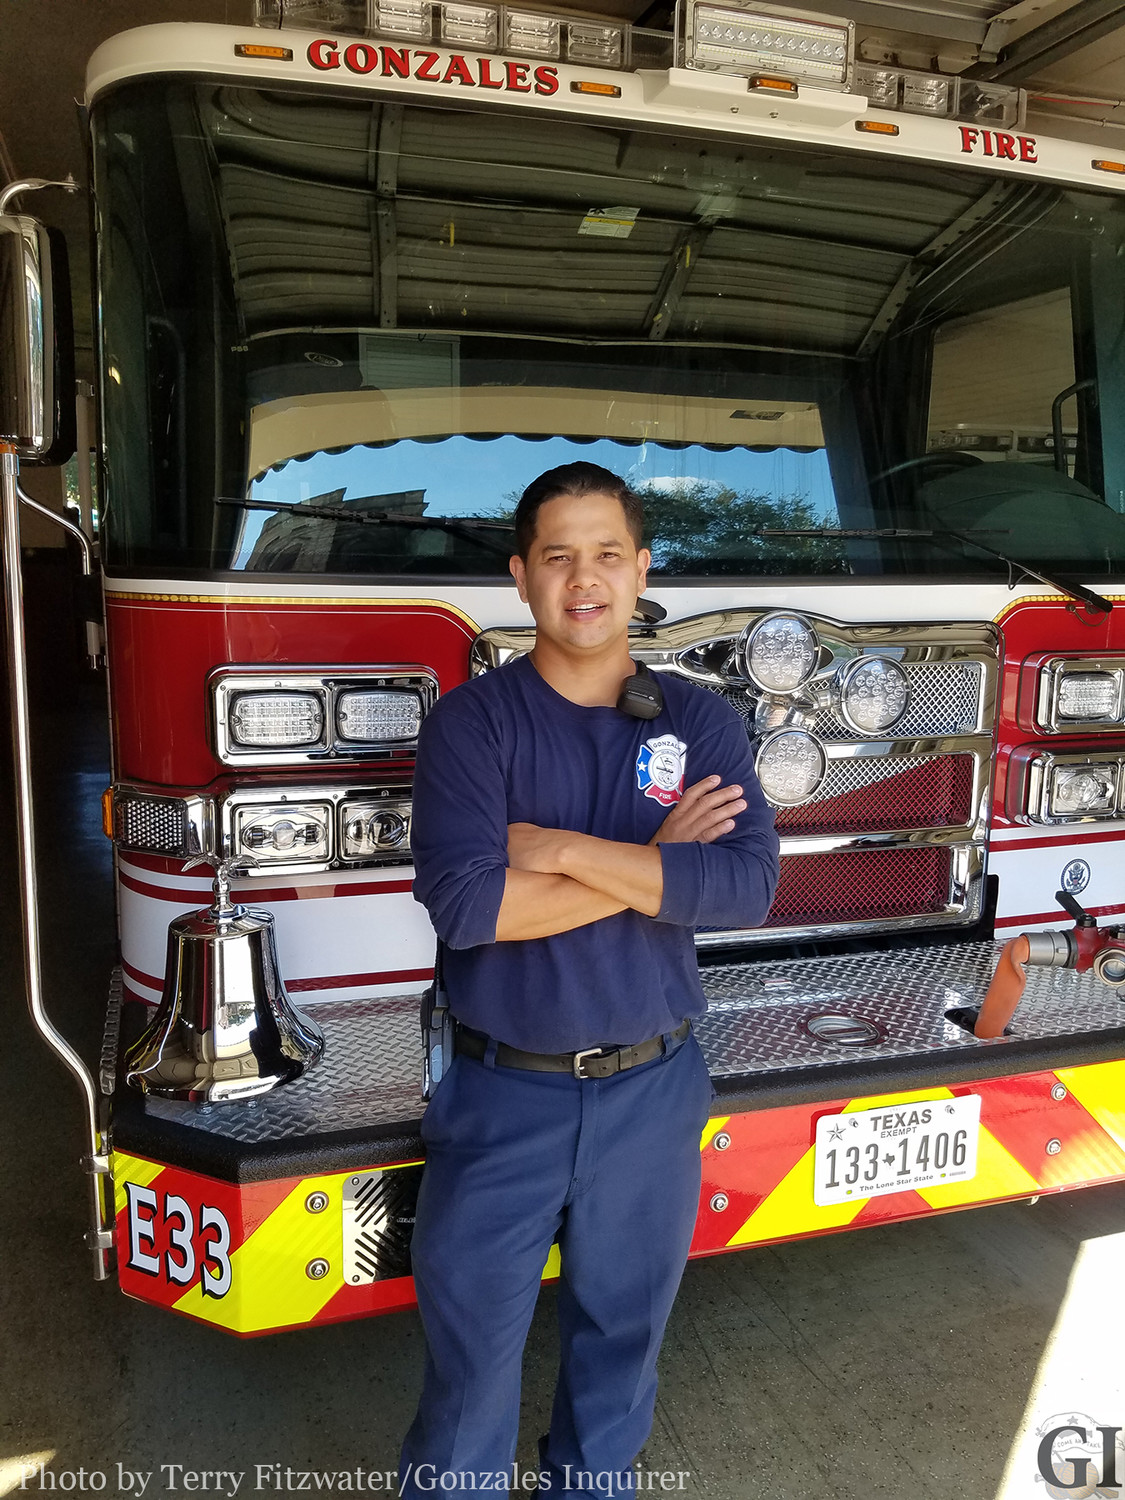 Despite a bit of teasing from the guys at the fire station, Eddie Velazquez enjoyed his time as an extra in filming the T.V. series The Son.